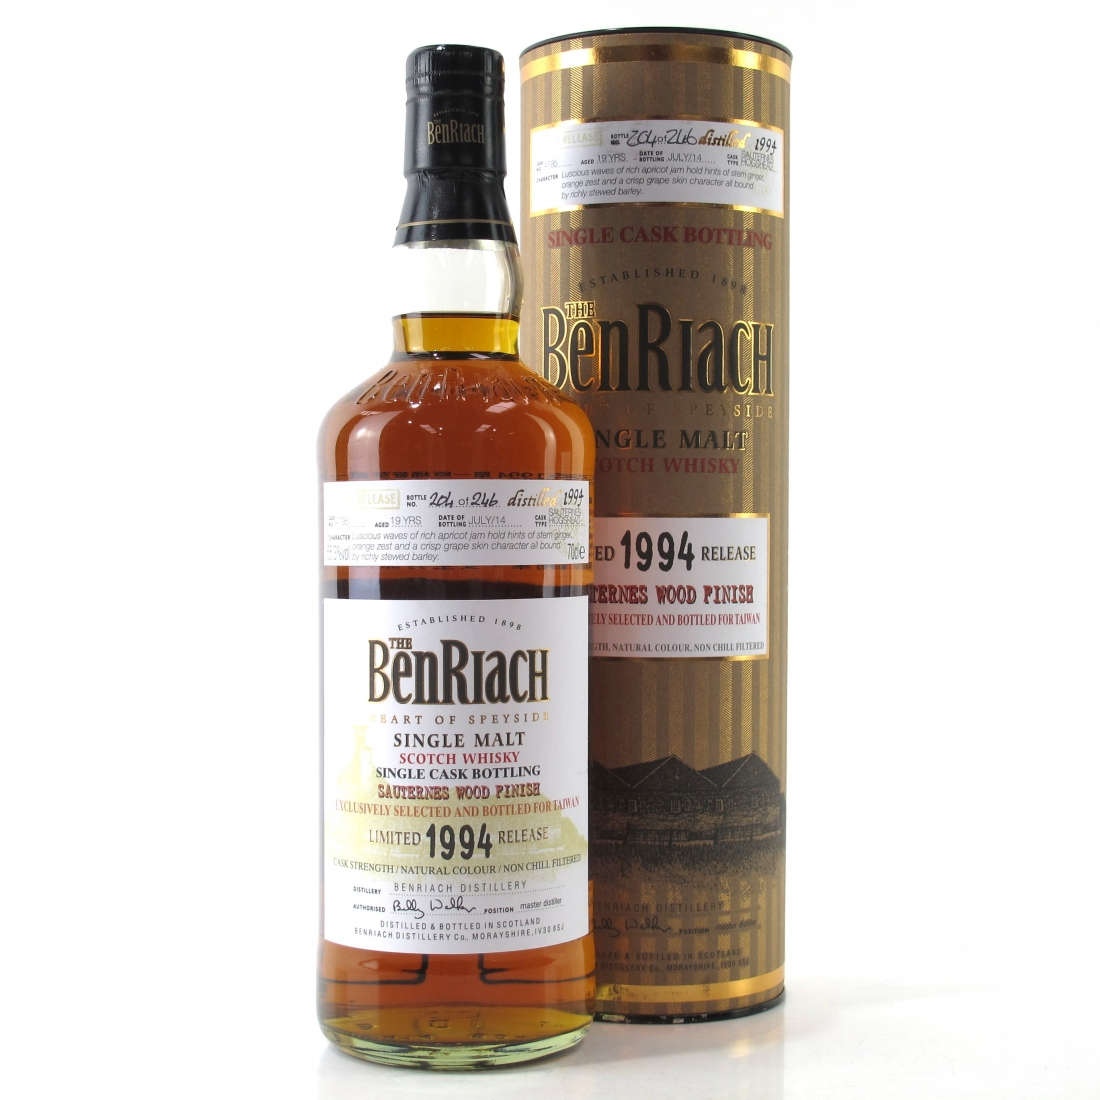 Benriach 1994 Single Cask 19 Year Old #4795 / Sauternes Wood Finish